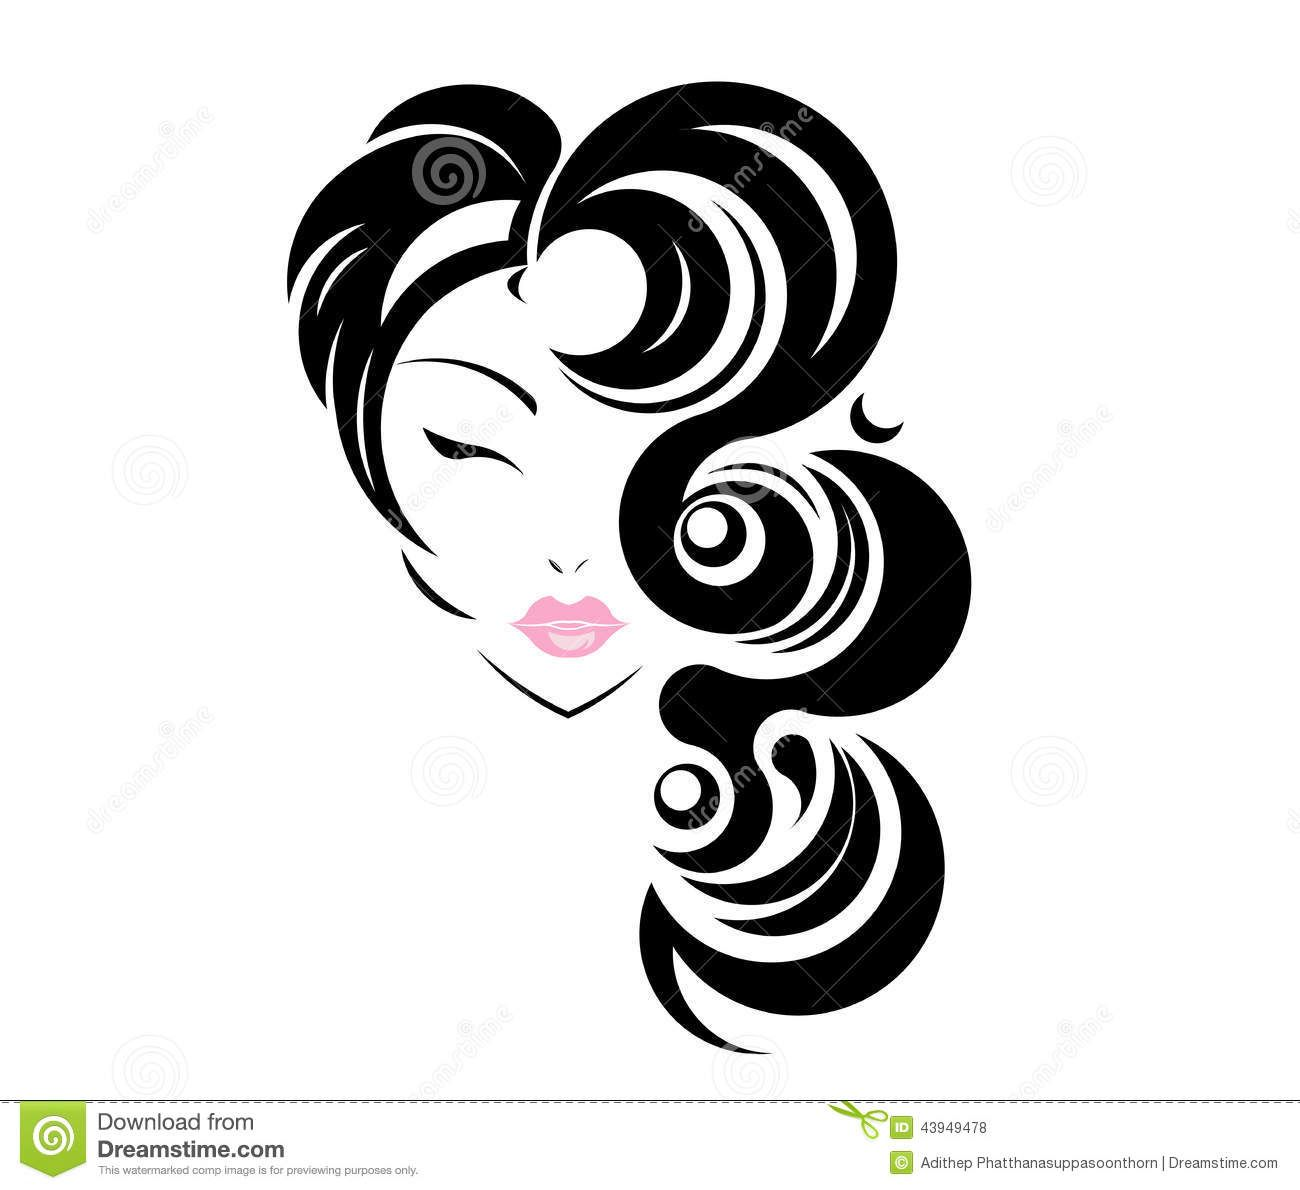 African american hair stylist clipart black and white free library Pin by Chrisp Media on Forever Glamorous | Beauty salon logo, Salon ... free library